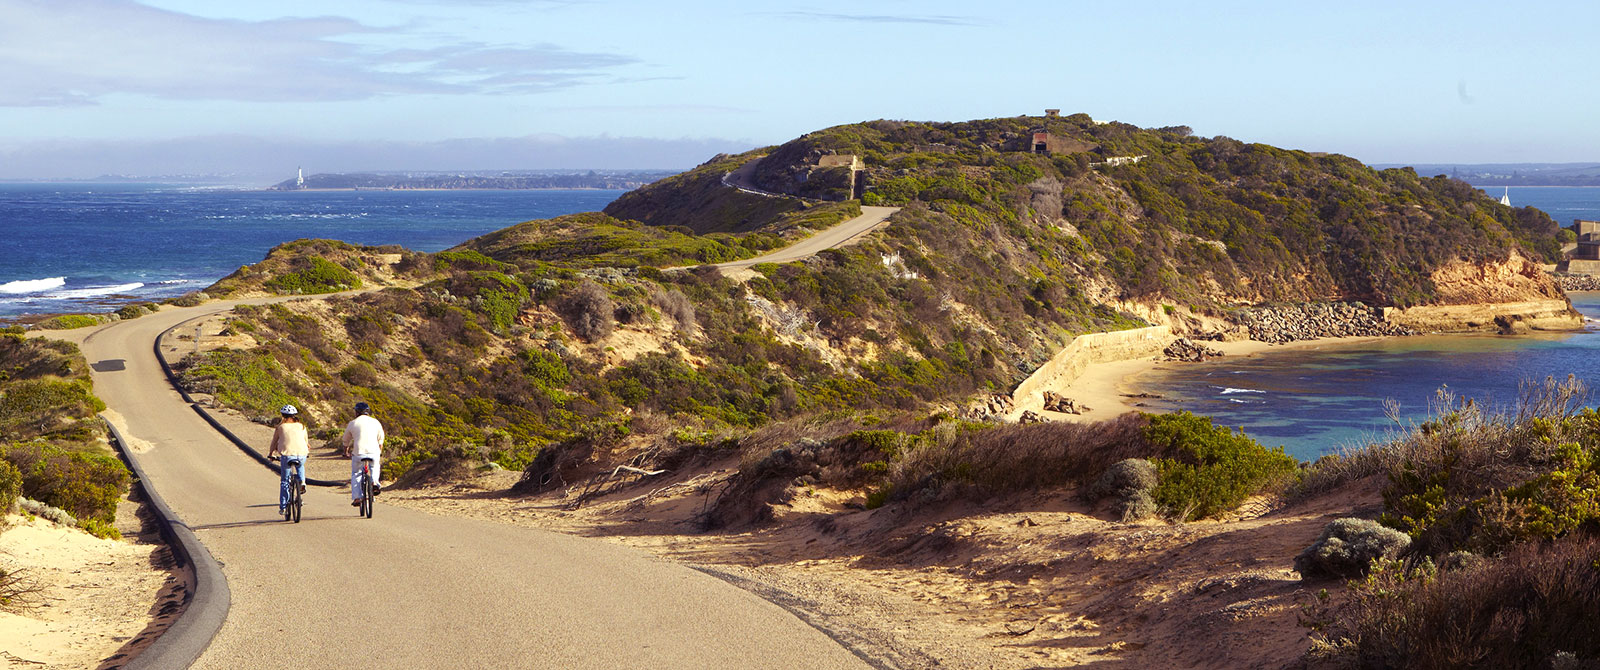 Biking Along the Coast in Mornington Peninsula - Australia Ultra-Luxury Vacation